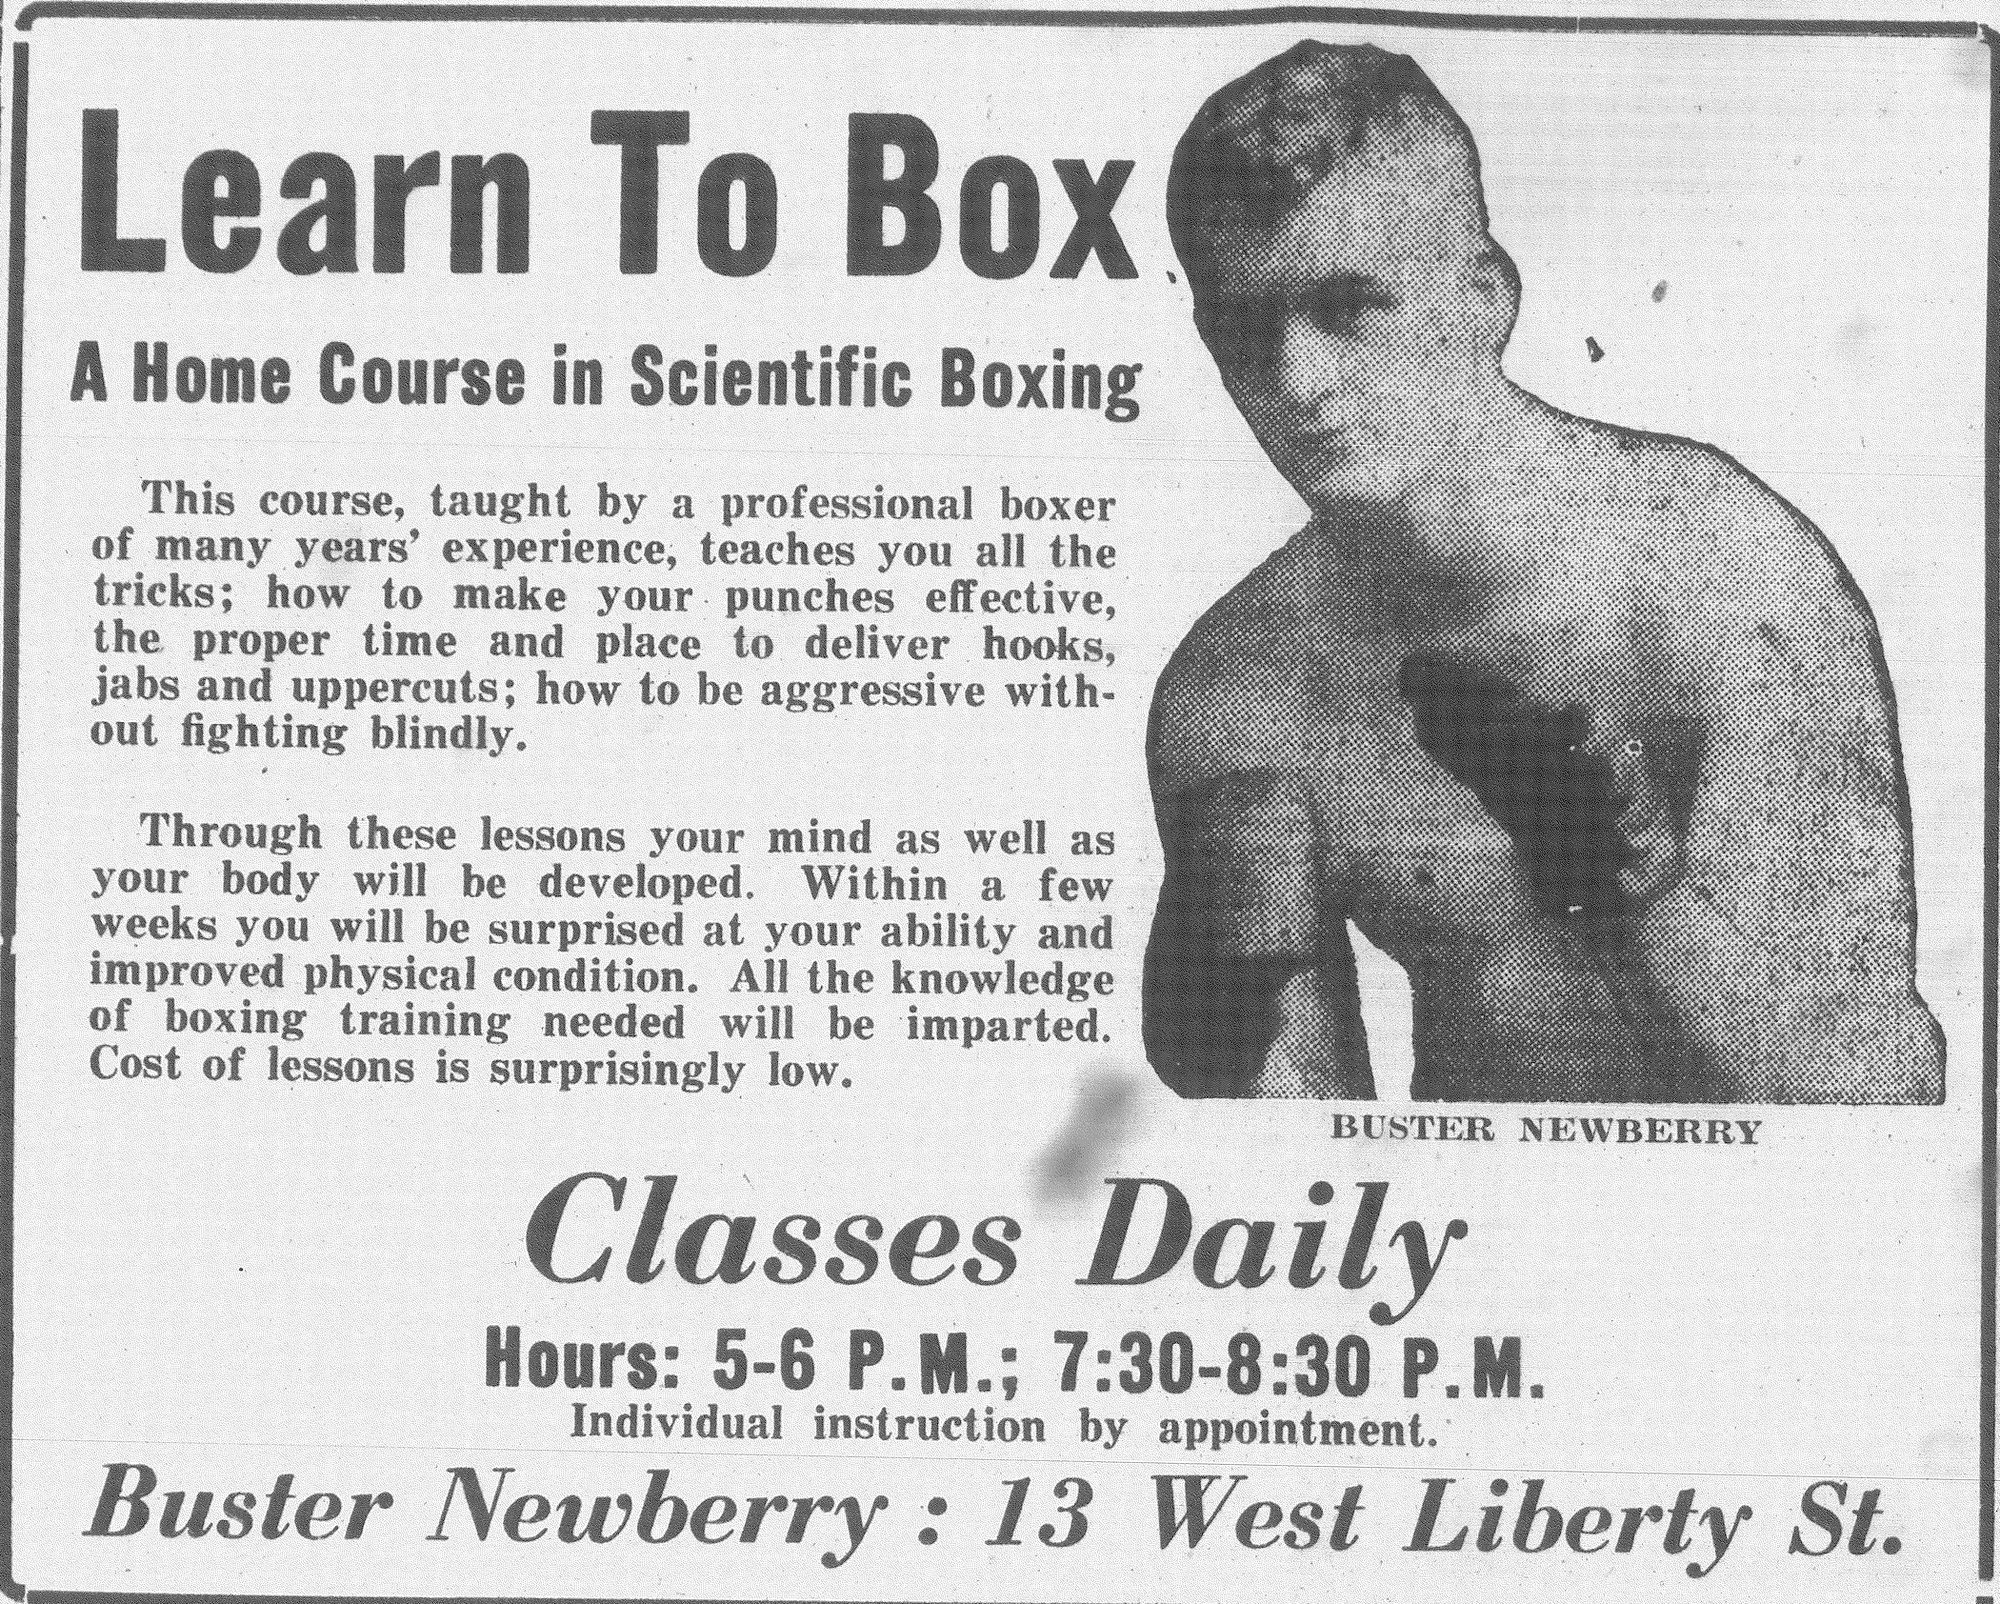 Newberry became an instructor for boxing in Sumter after his fighting career, holding classes throughout the week.